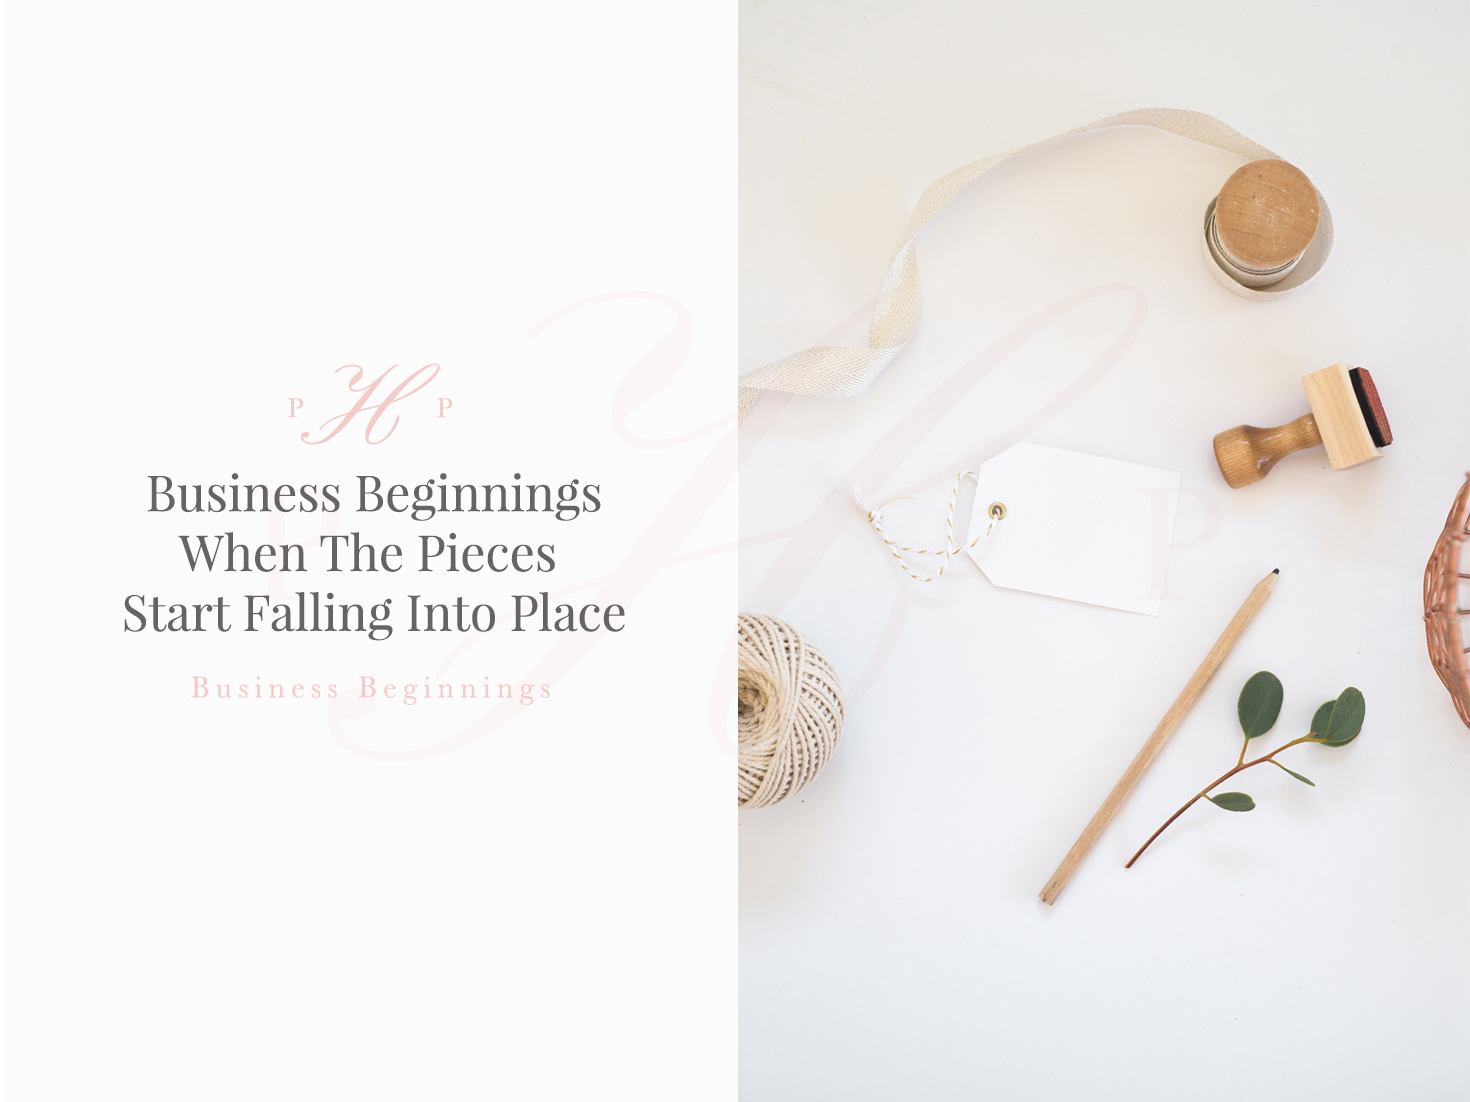 Business Beginnings - When The Pieces Start Falling Into Place